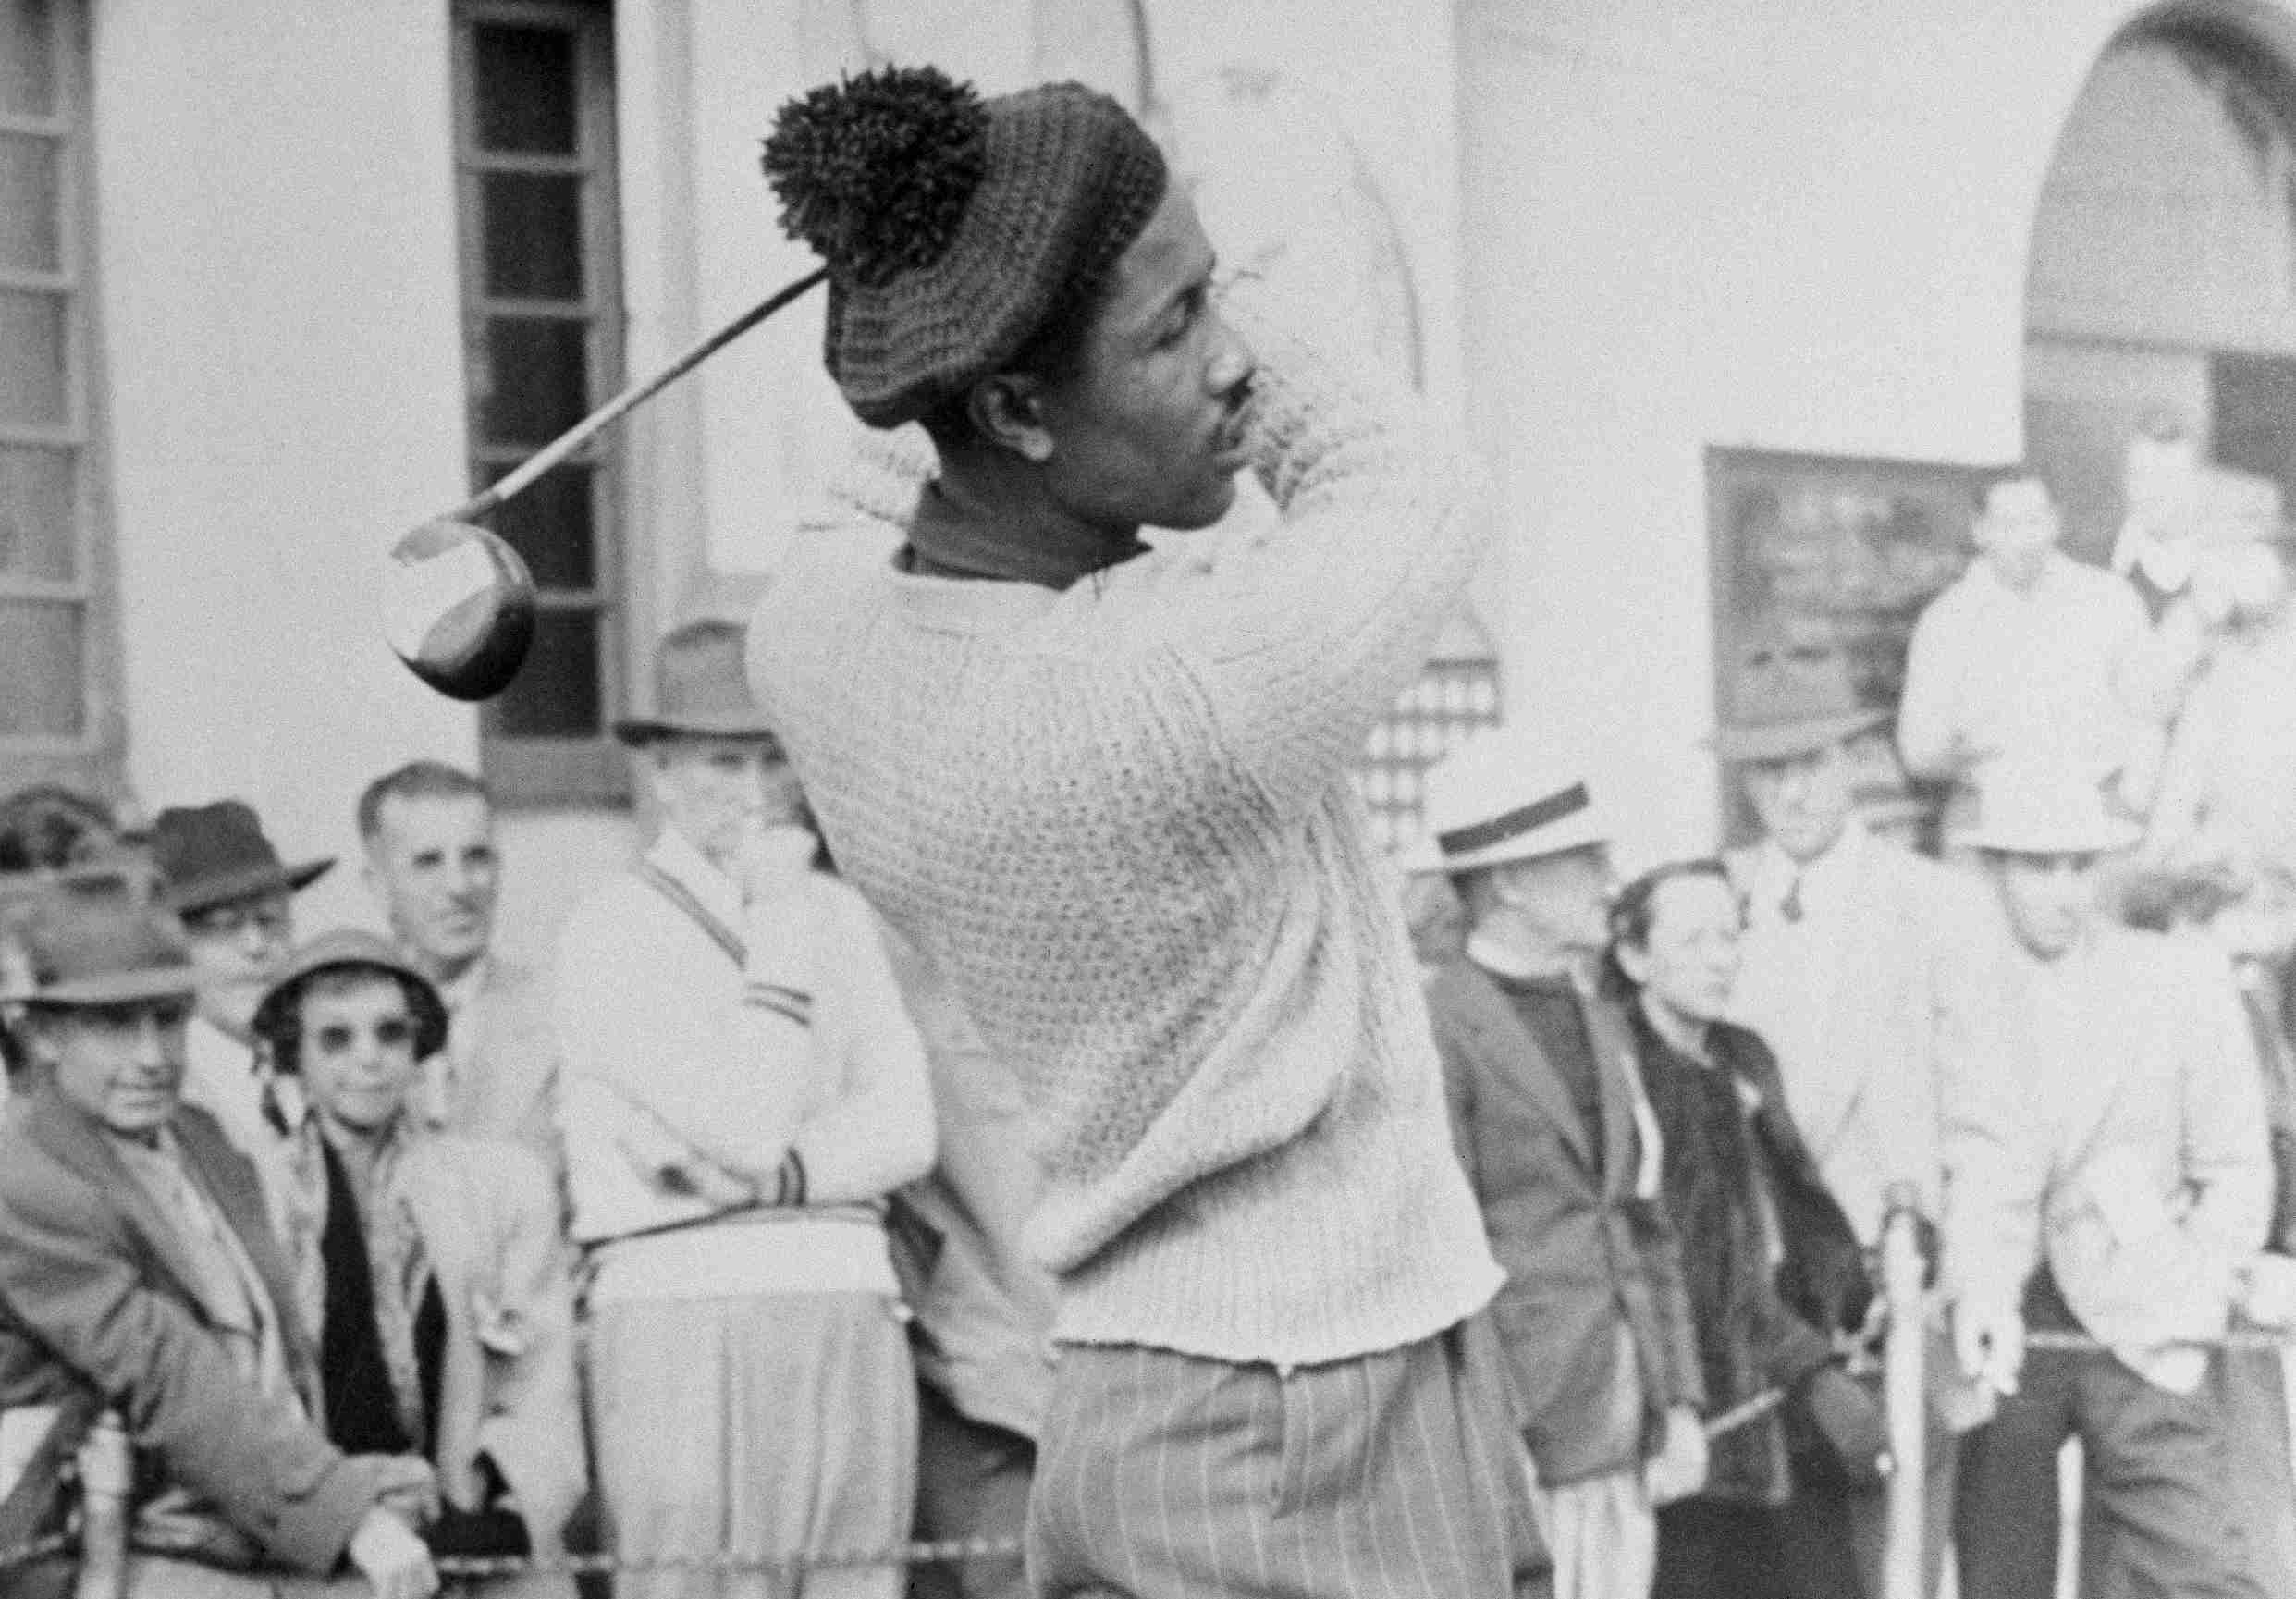 Golfer Ted Rhodes pictured in 1948